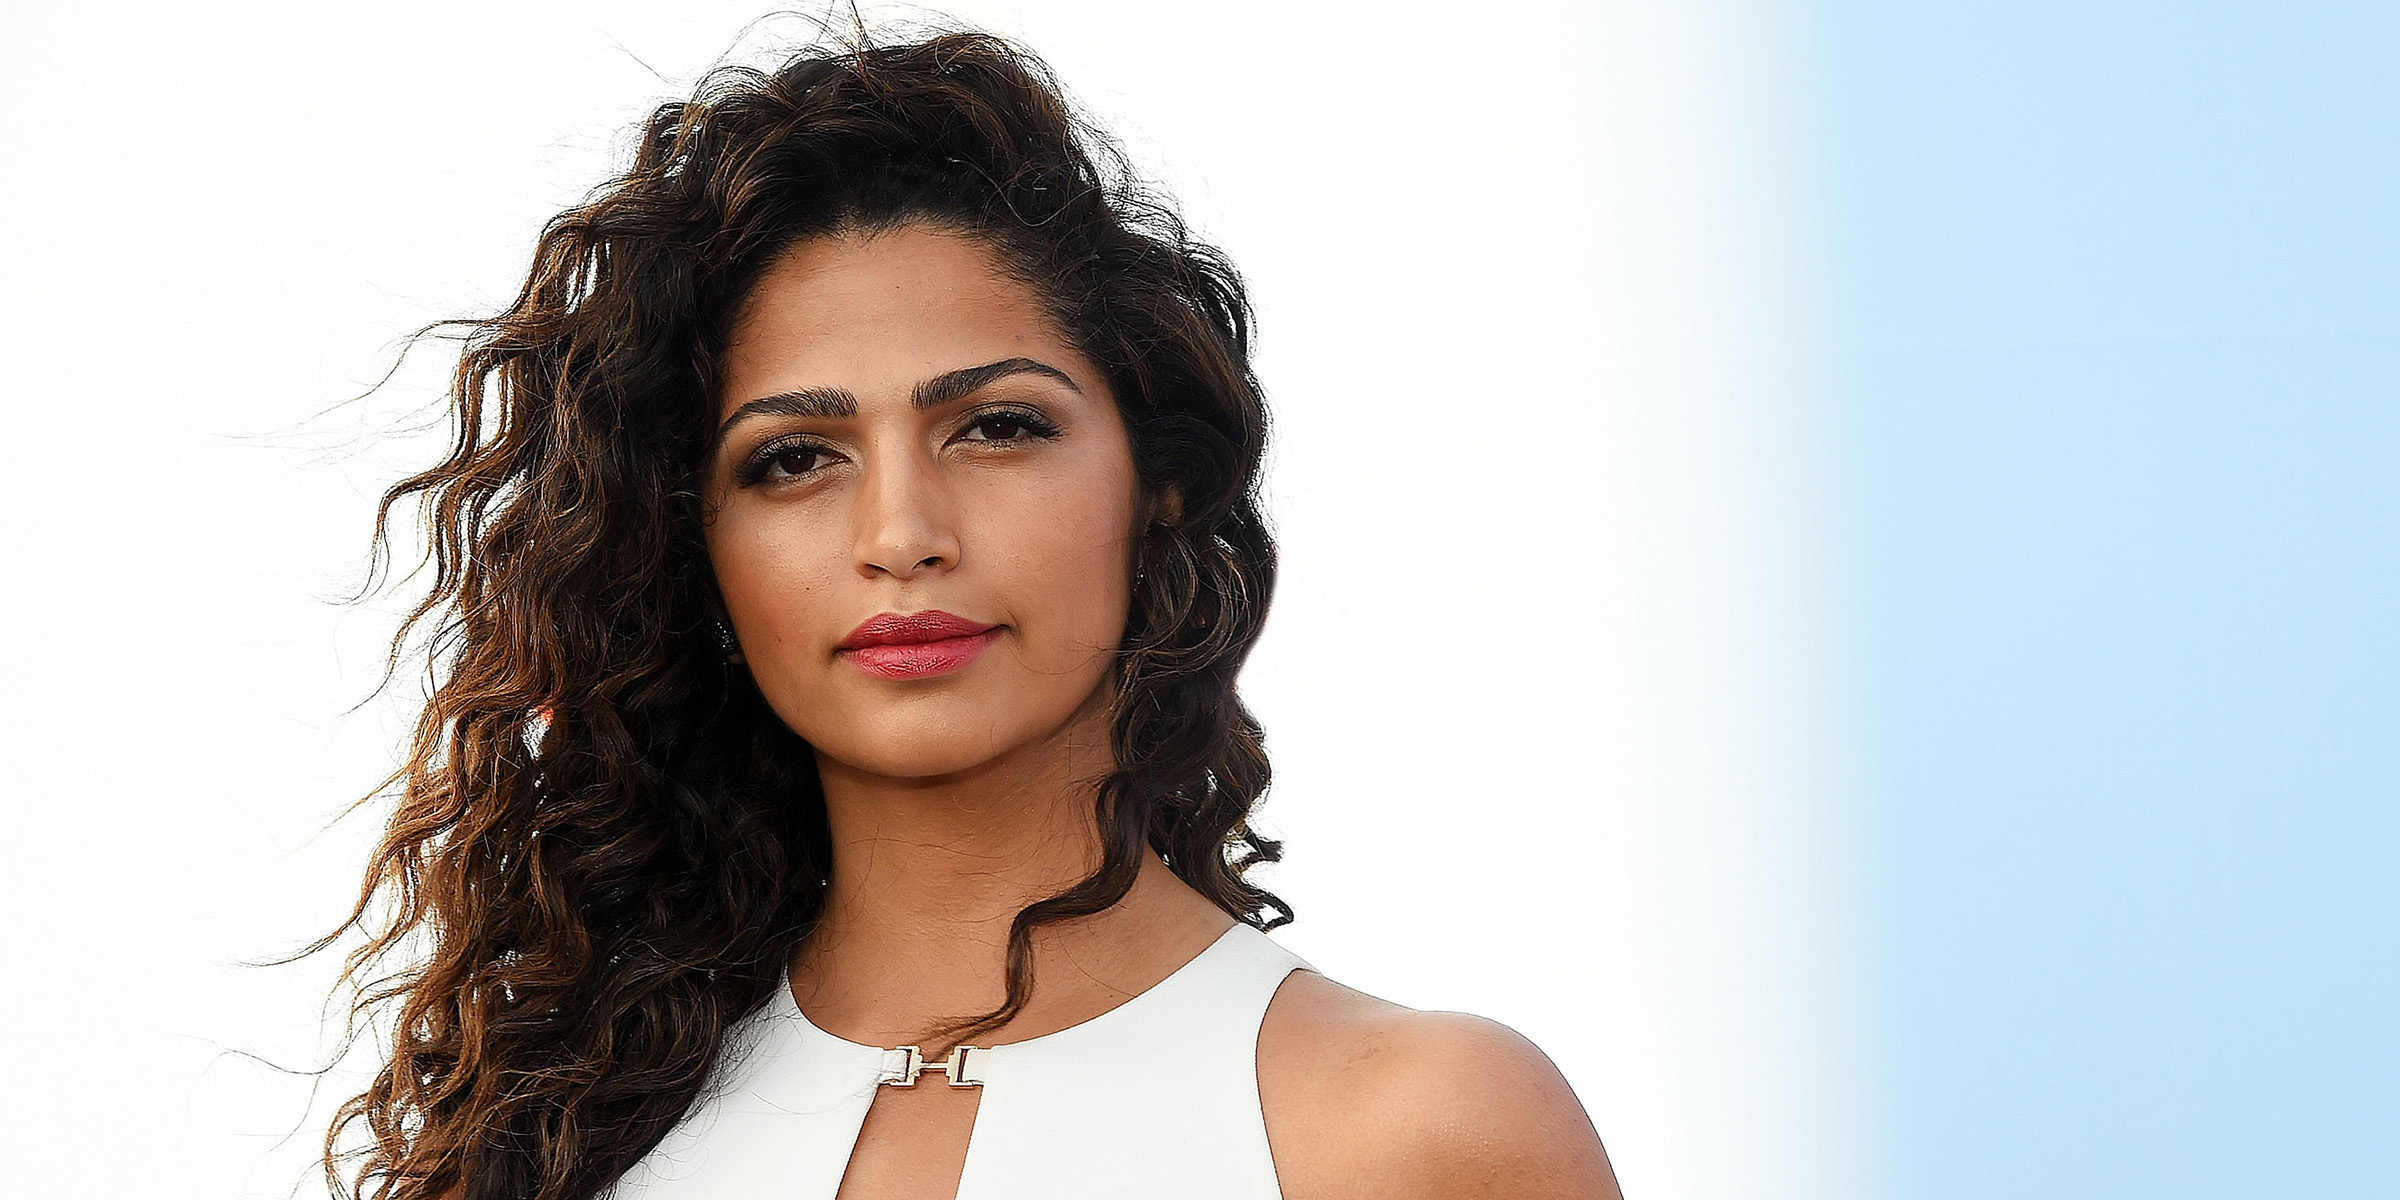 Model Camila Alves Swears By This 1 Natural Skin Care Product For The Winter